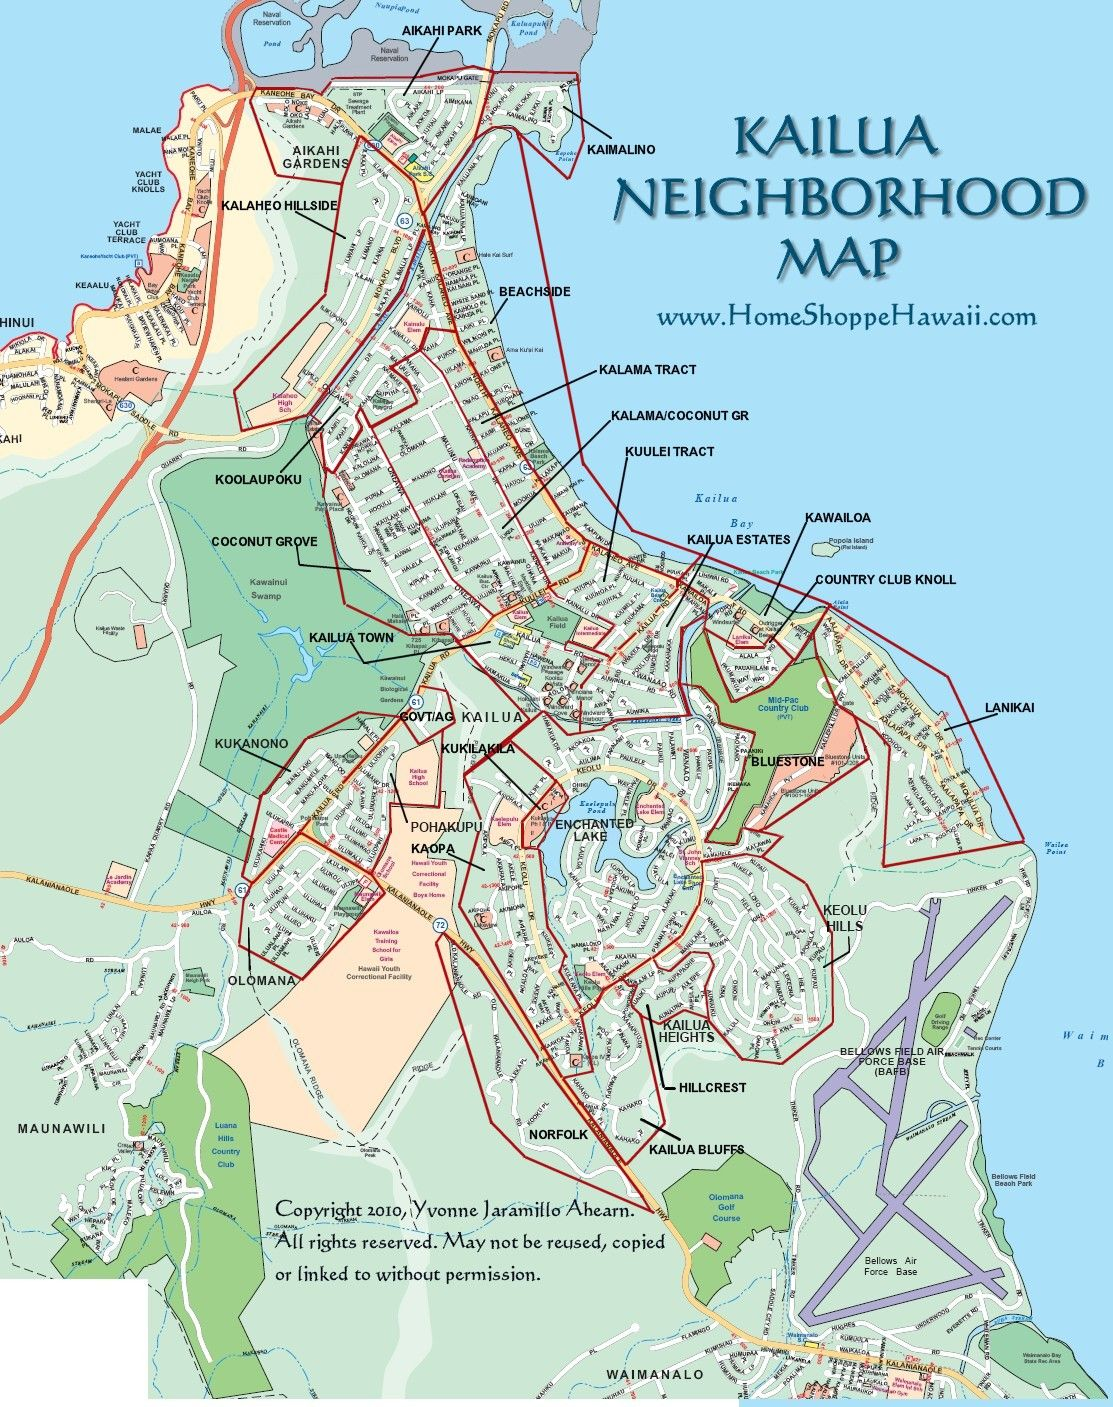 NEIGHBORHOOD BOARD OAHU MAP | Oahu Bits | Pinterest | Oahu and Hawaii